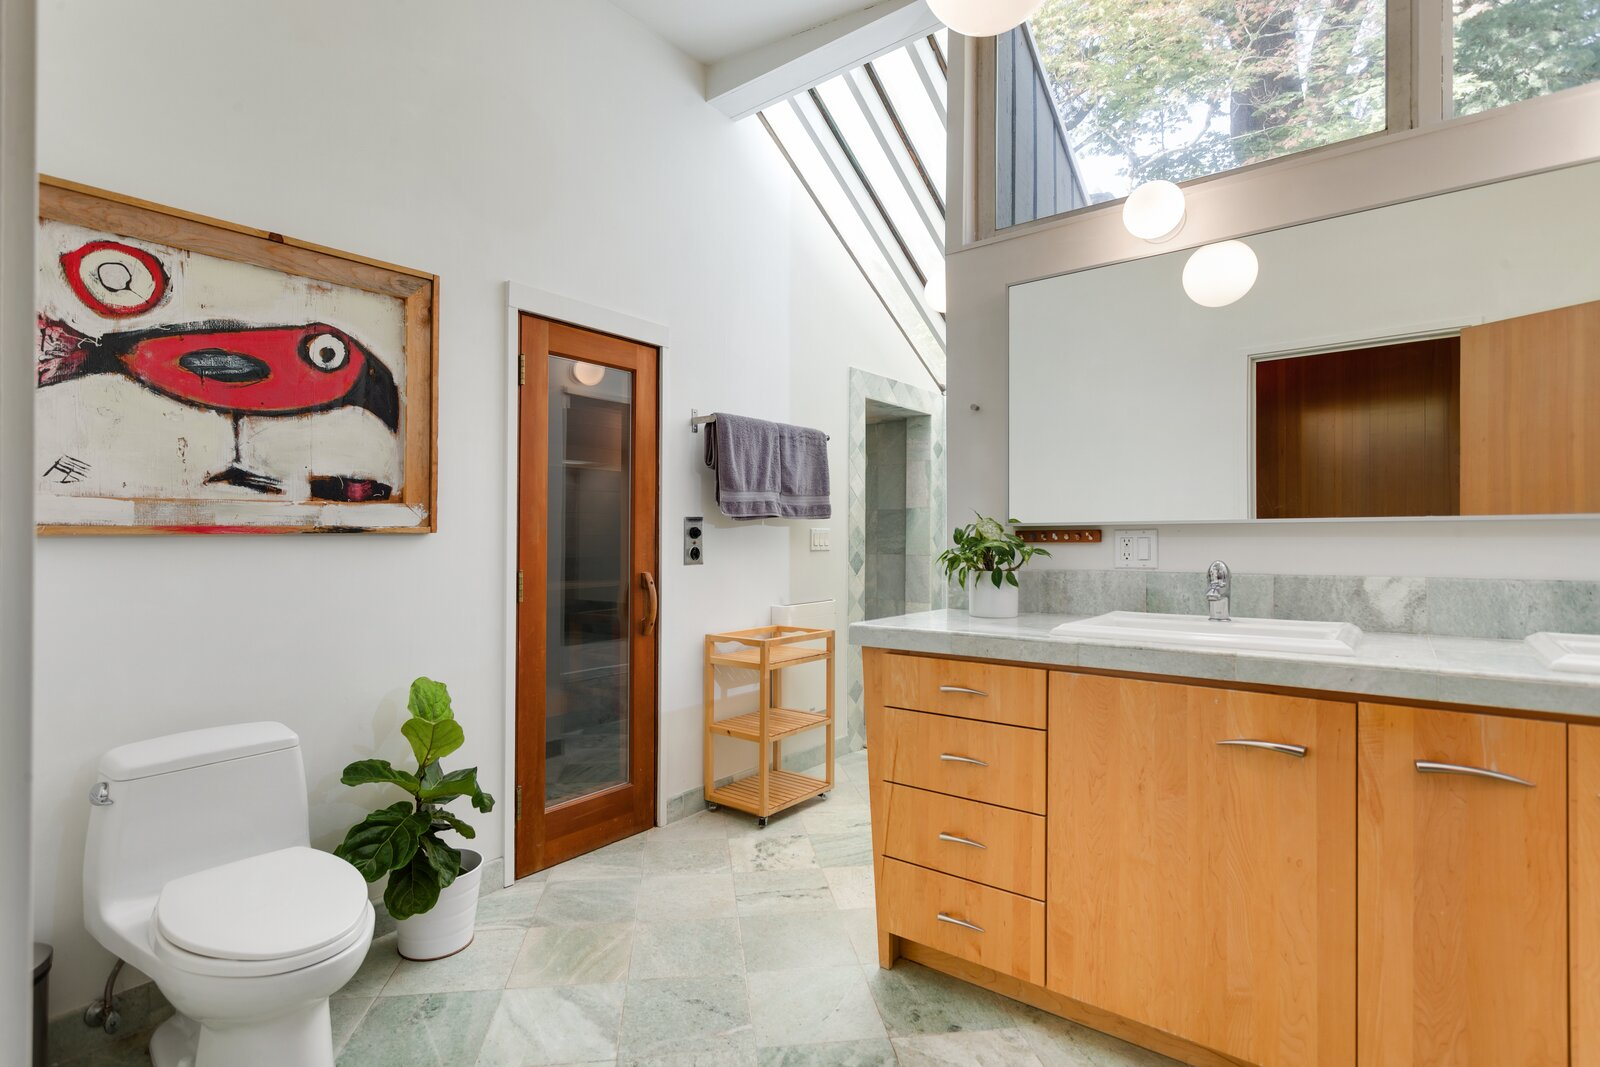 Bathroom in Smith-Gerst Residence by Frank Shell